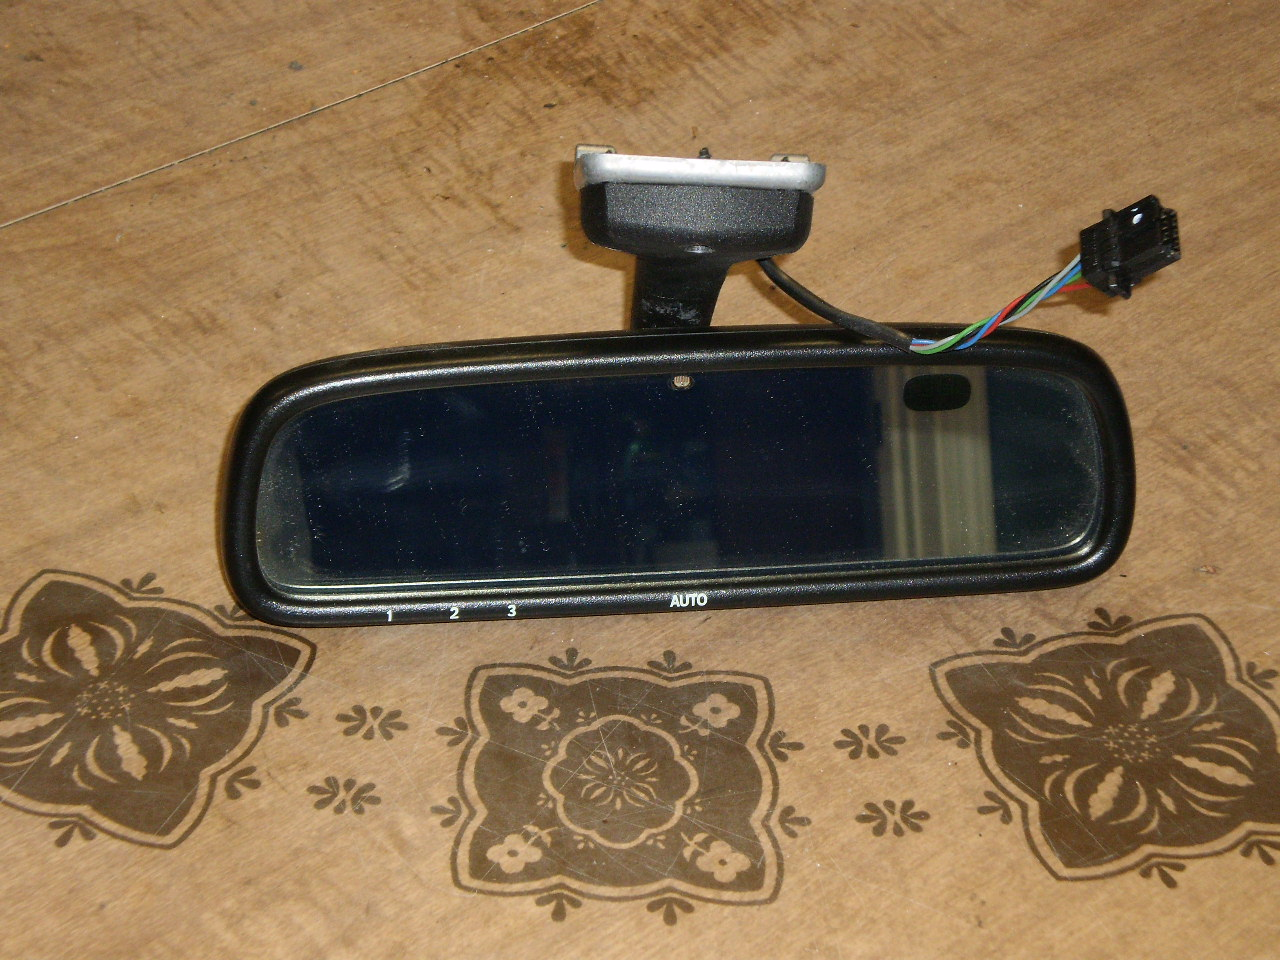 03-11 SAAB 9-3 SUPER REARVIEW MIRROR